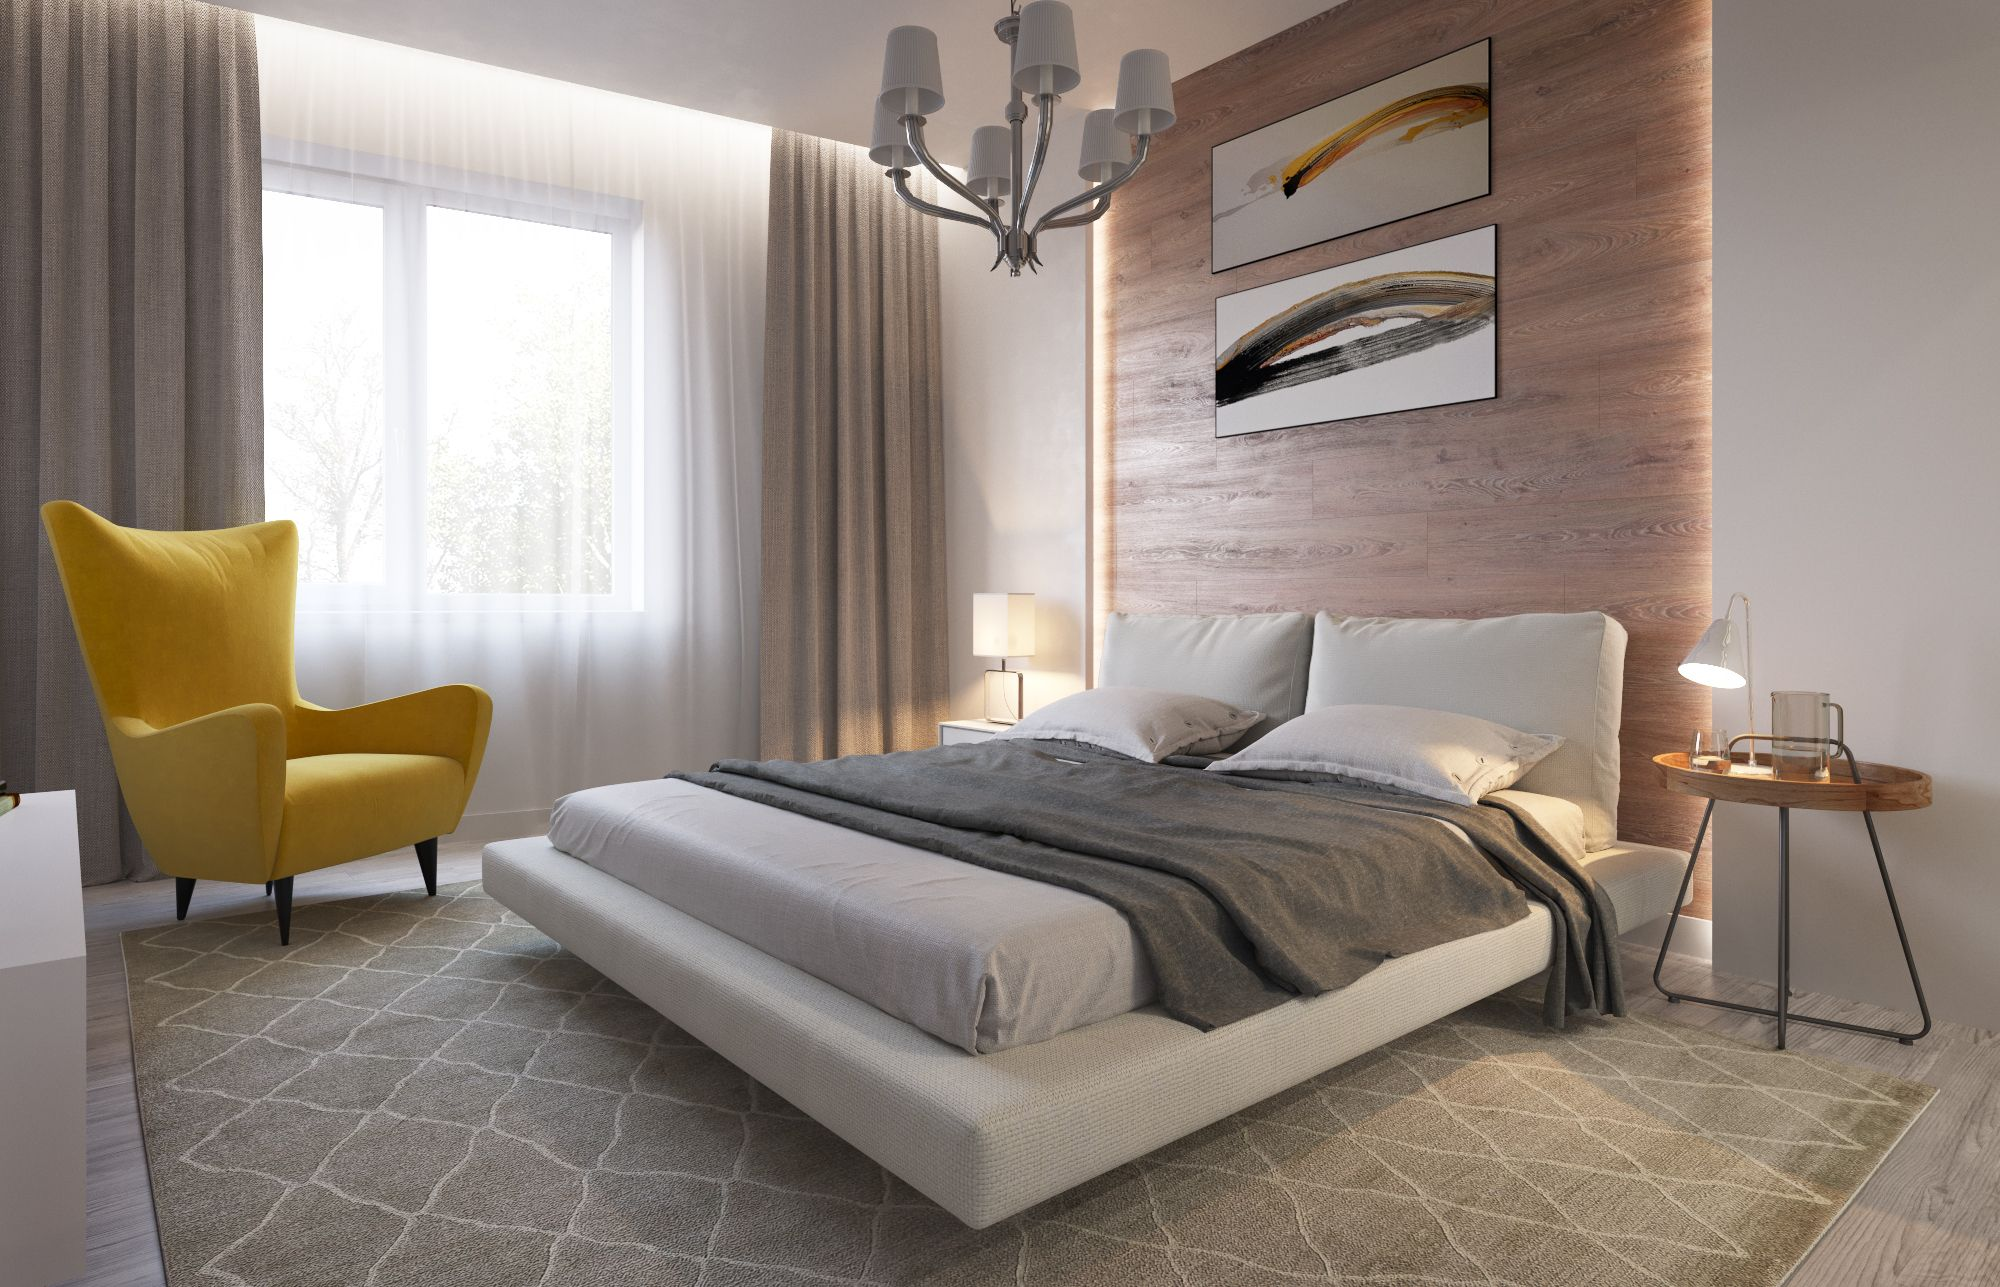 Interior Design Of A Light Bedroom With A Podium Bed